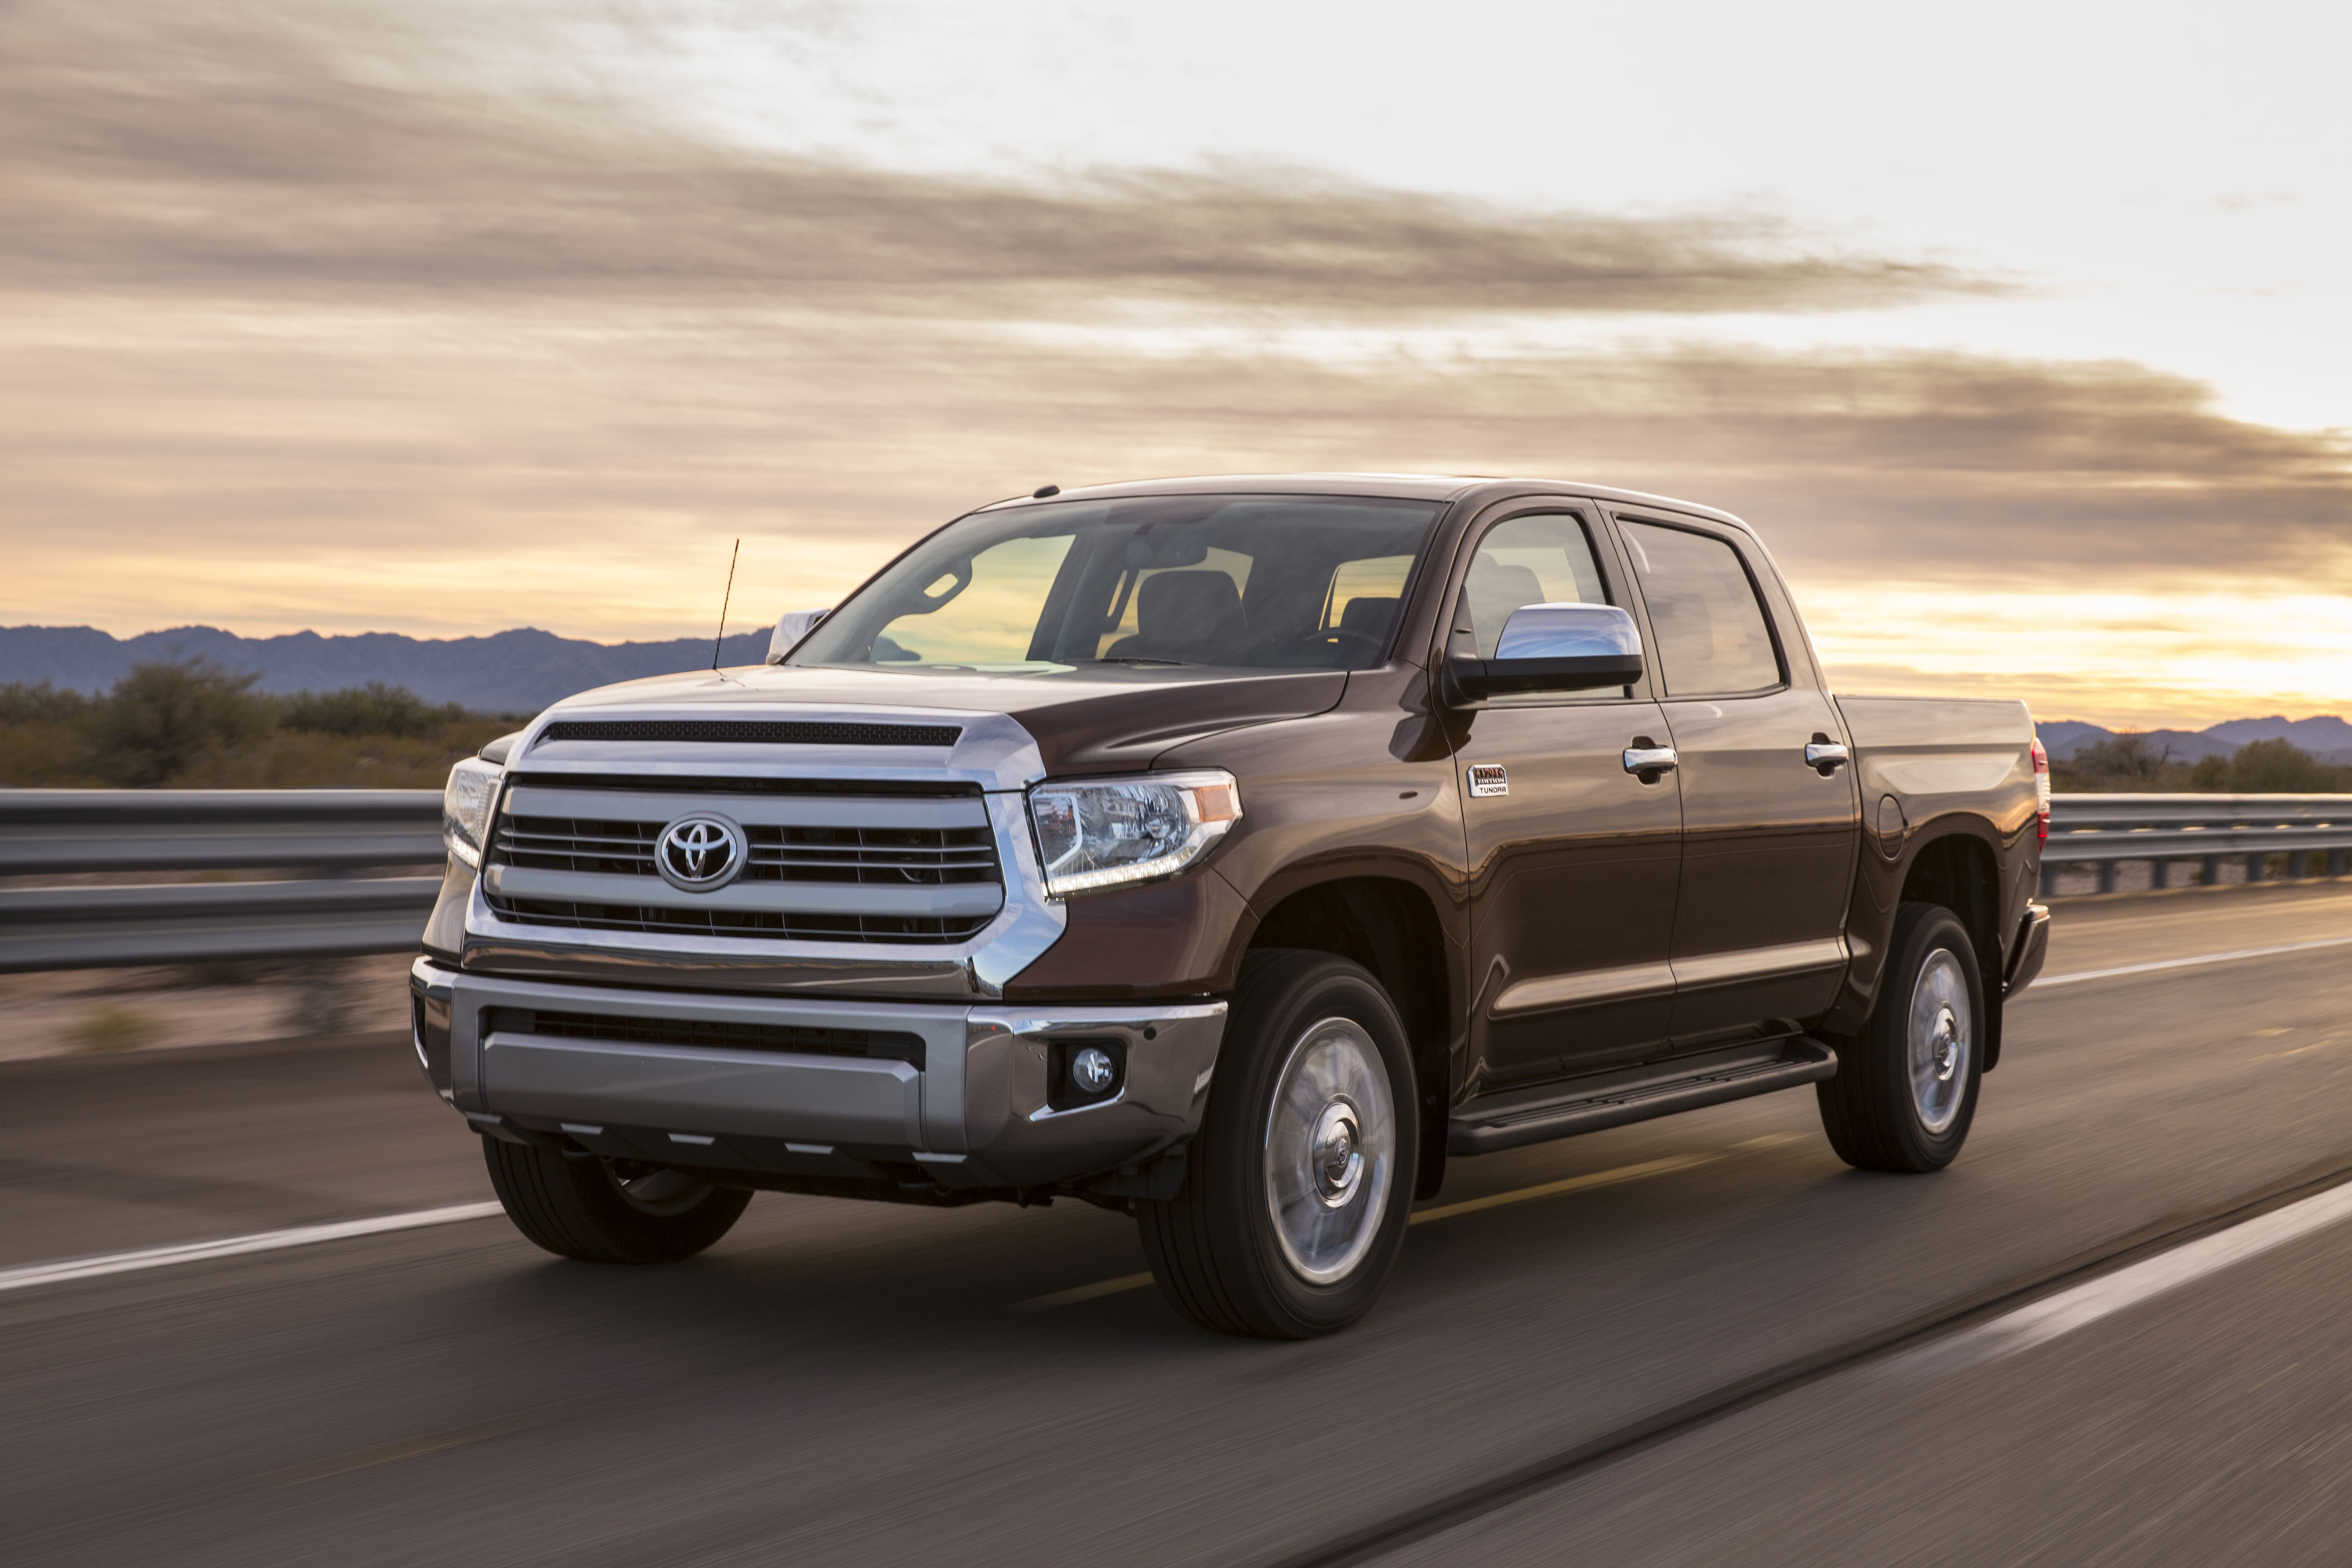 chicago auto show toyota unveils 2014 tundra are you as disappointed as we are autospies. Black Bedroom Furniture Sets. Home Design Ideas